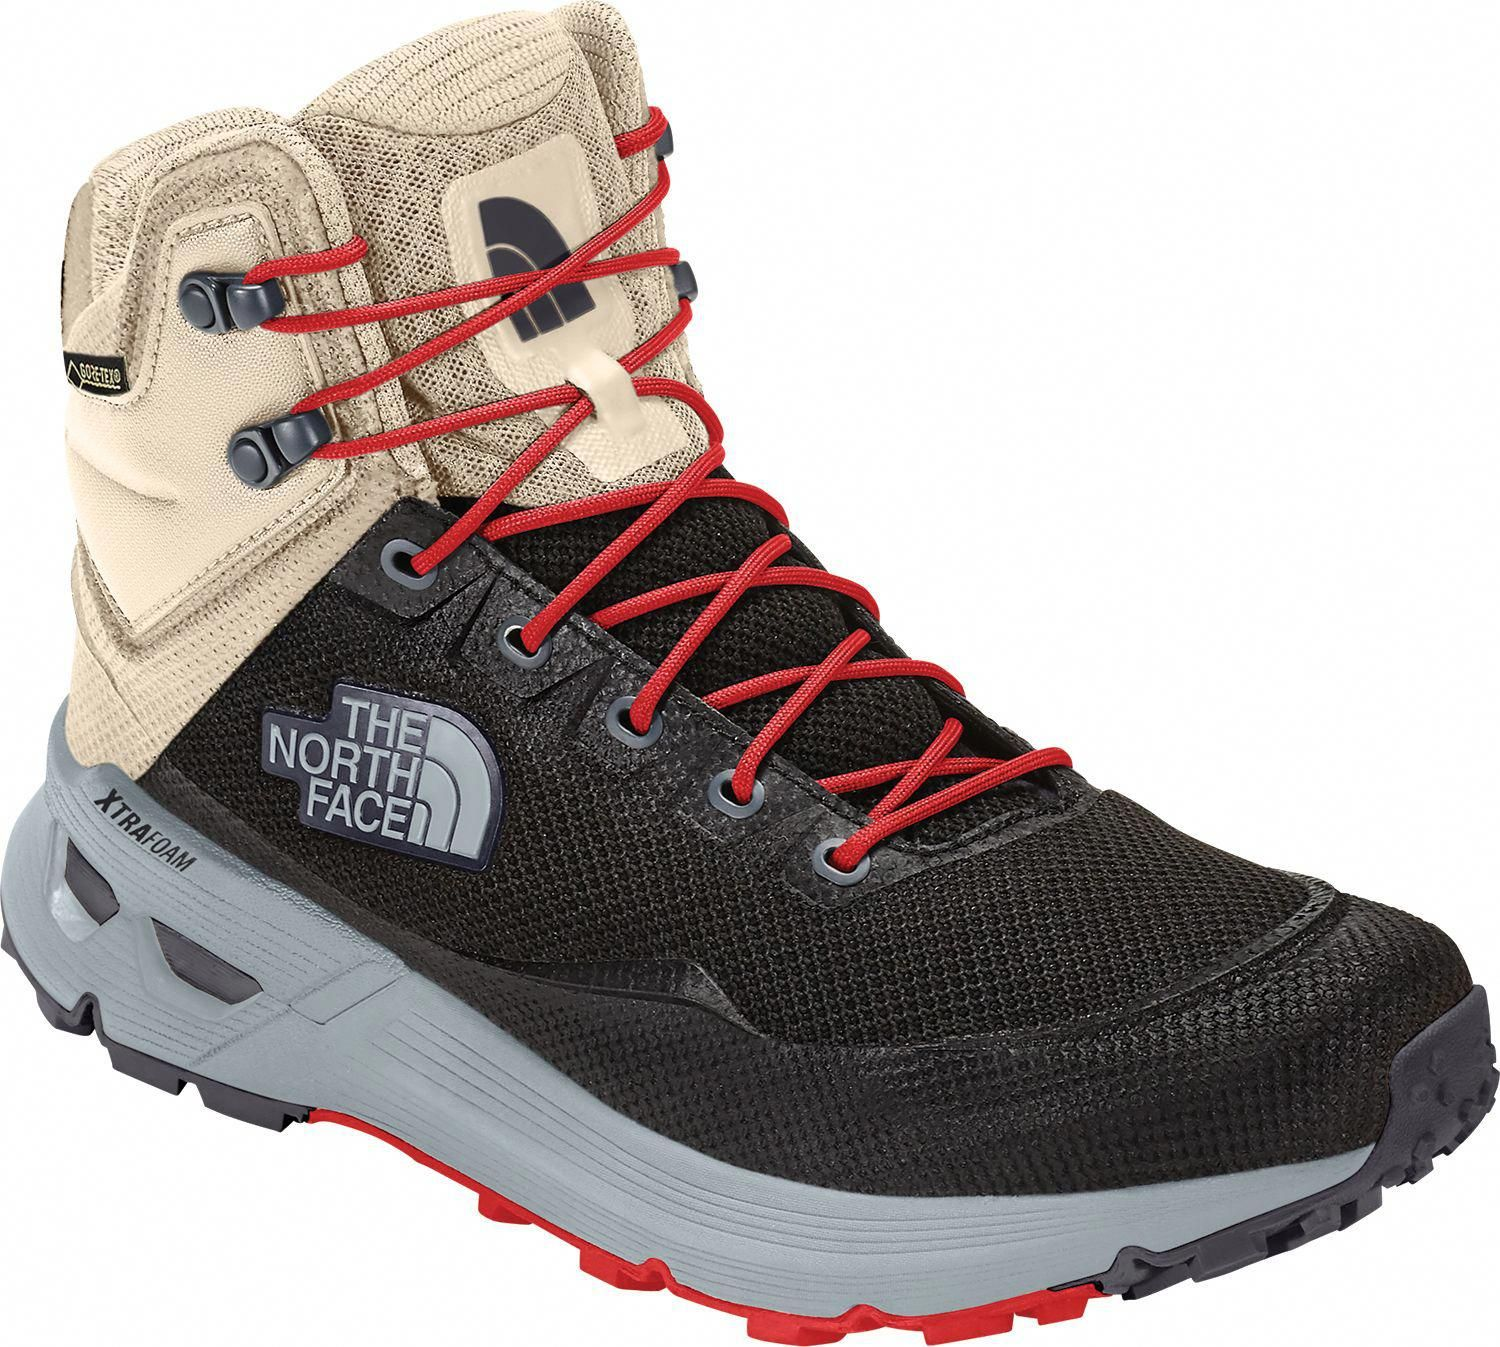 The North Face Men's Safien Mid GTX Waterproof Hiking Boots